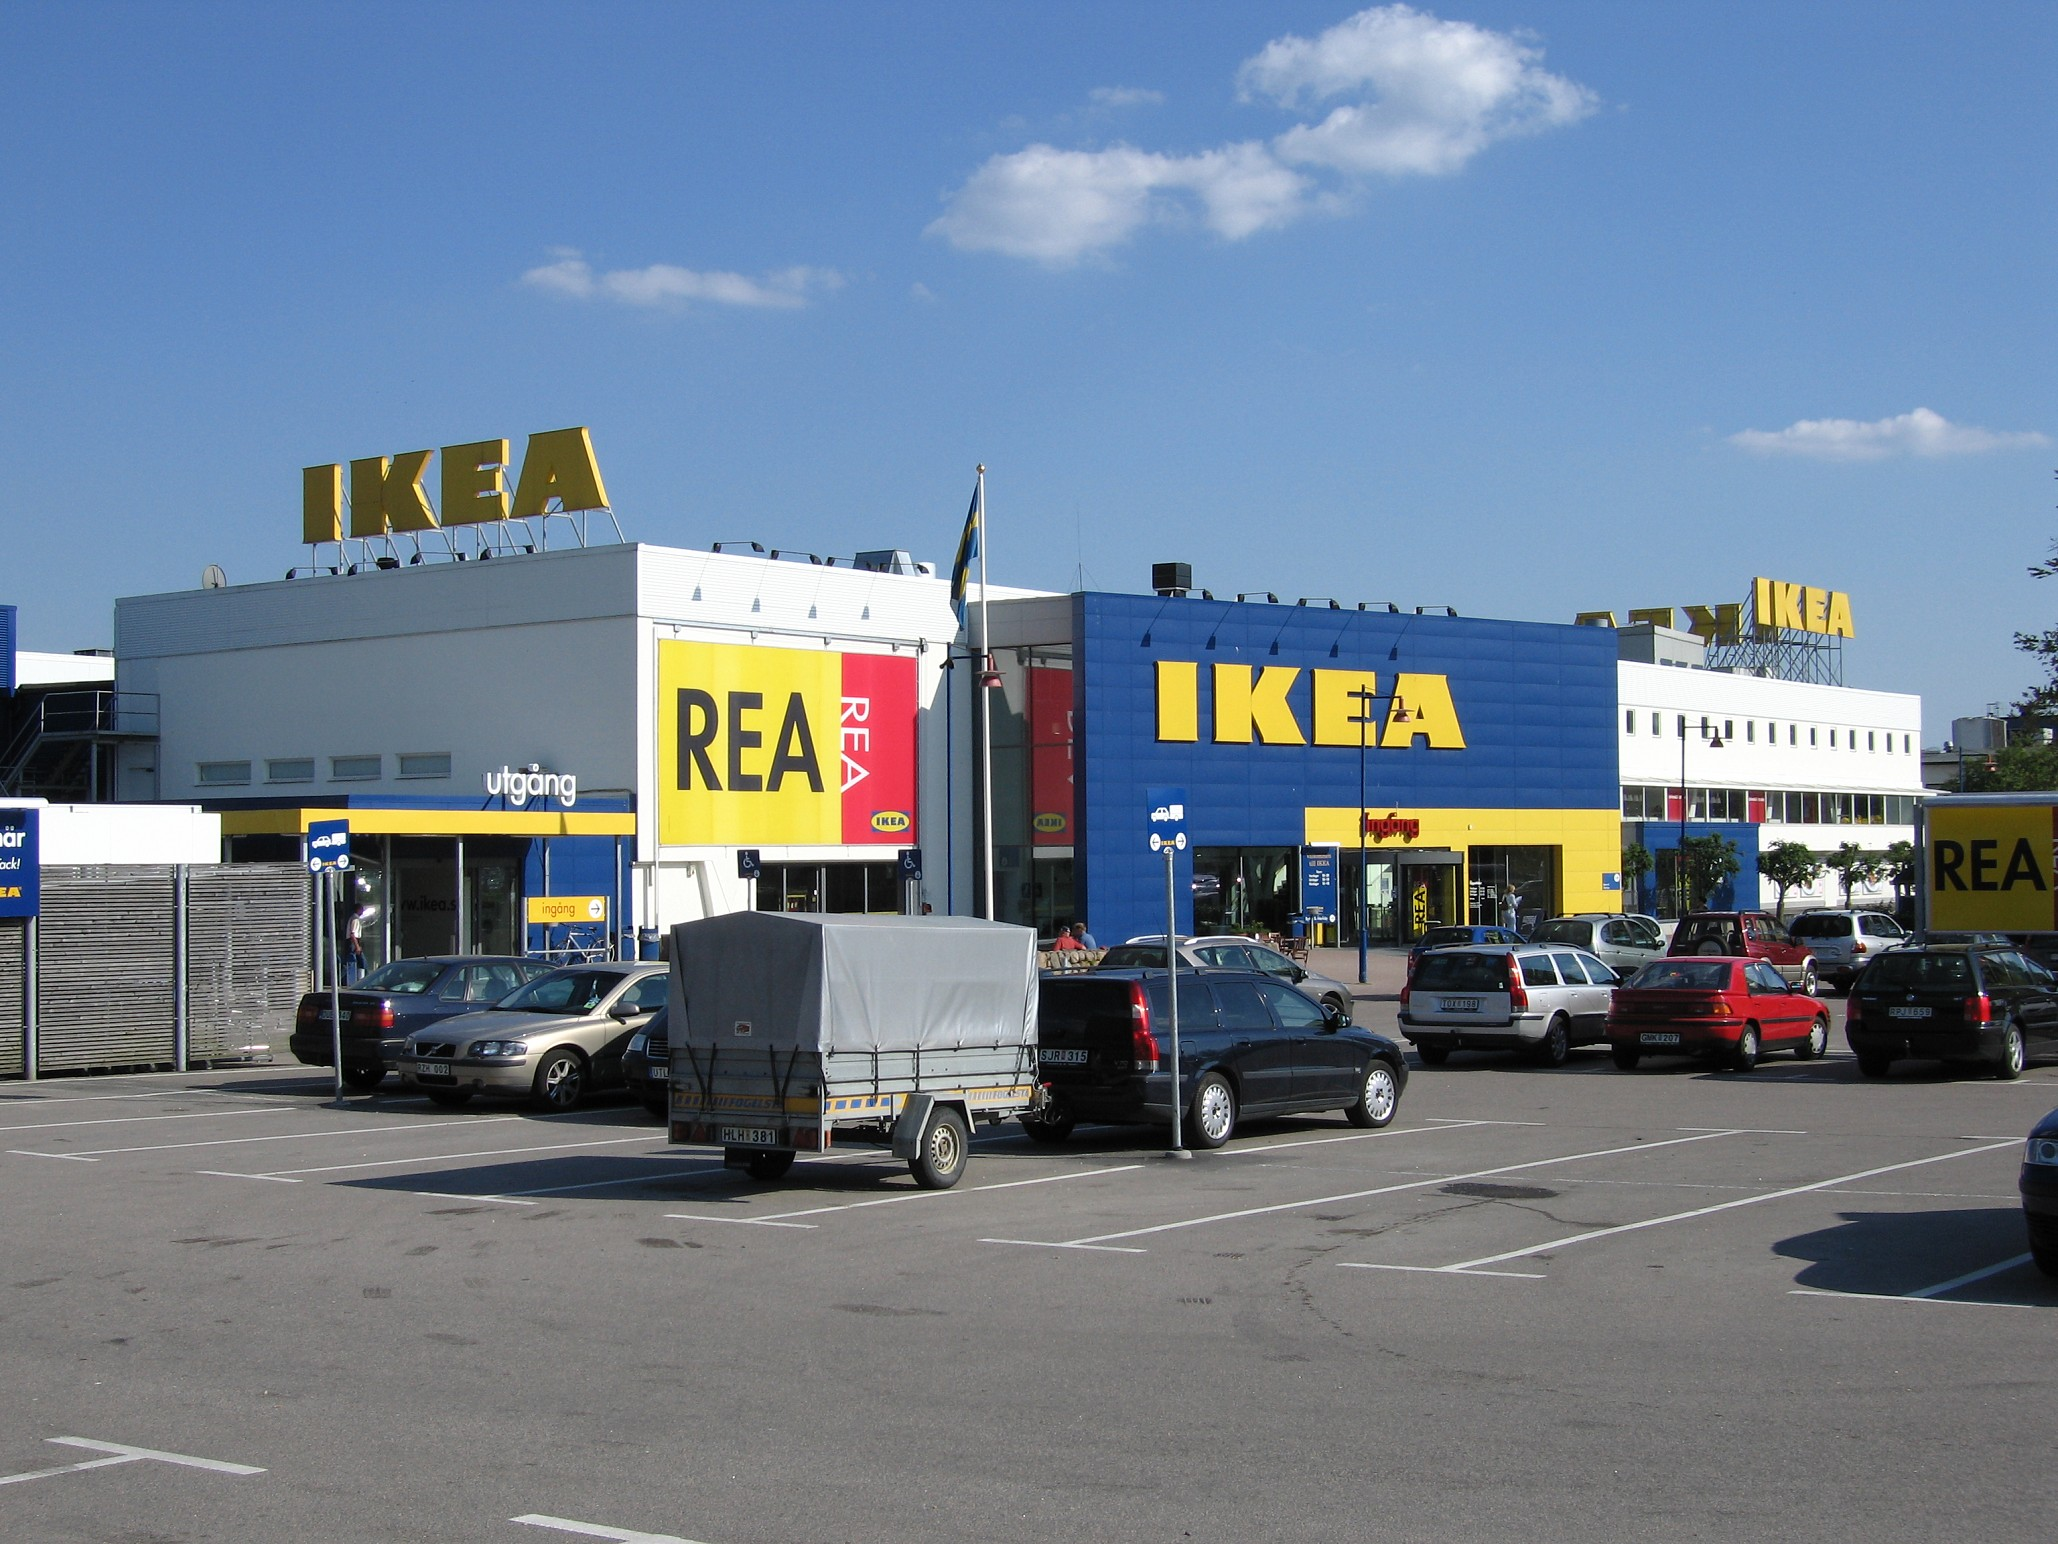 file ikea store wikimedia commons. Black Bedroom Furniture Sets. Home Design Ideas